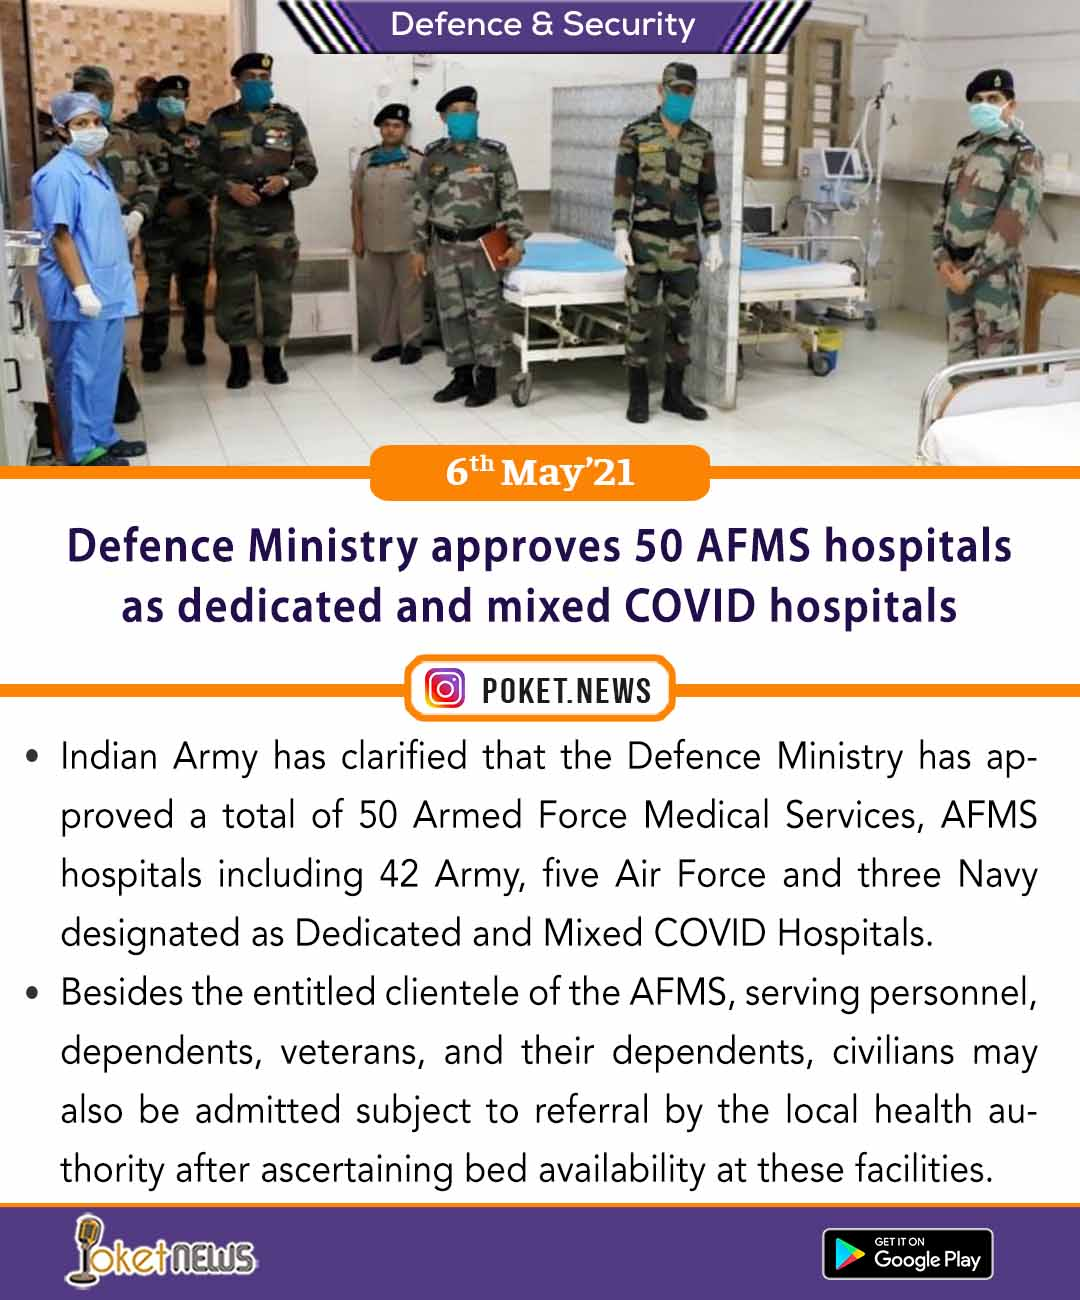 Defence Ministry approves 50 AFMS hospitals as dedicated and mixed COVID hospitals